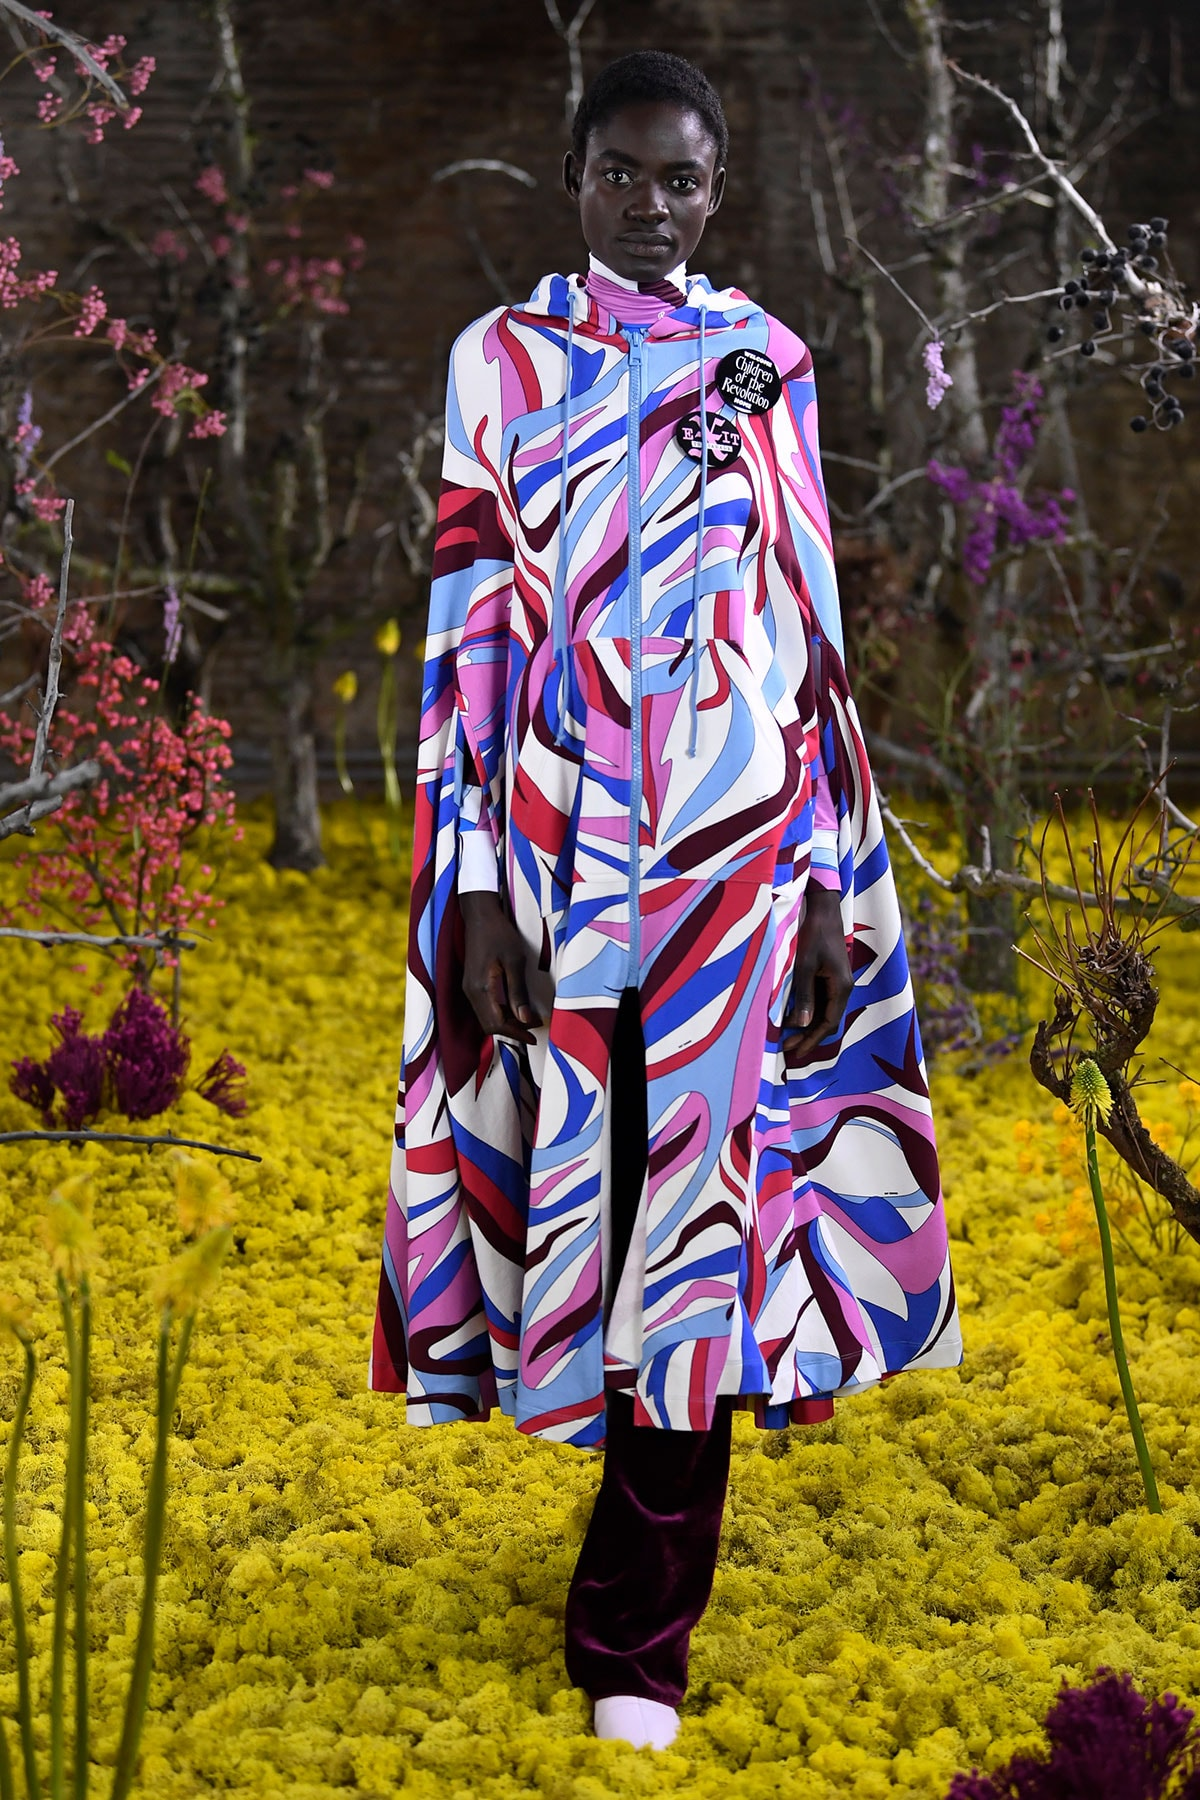 In Pictures: First women's collection at Raf Simons